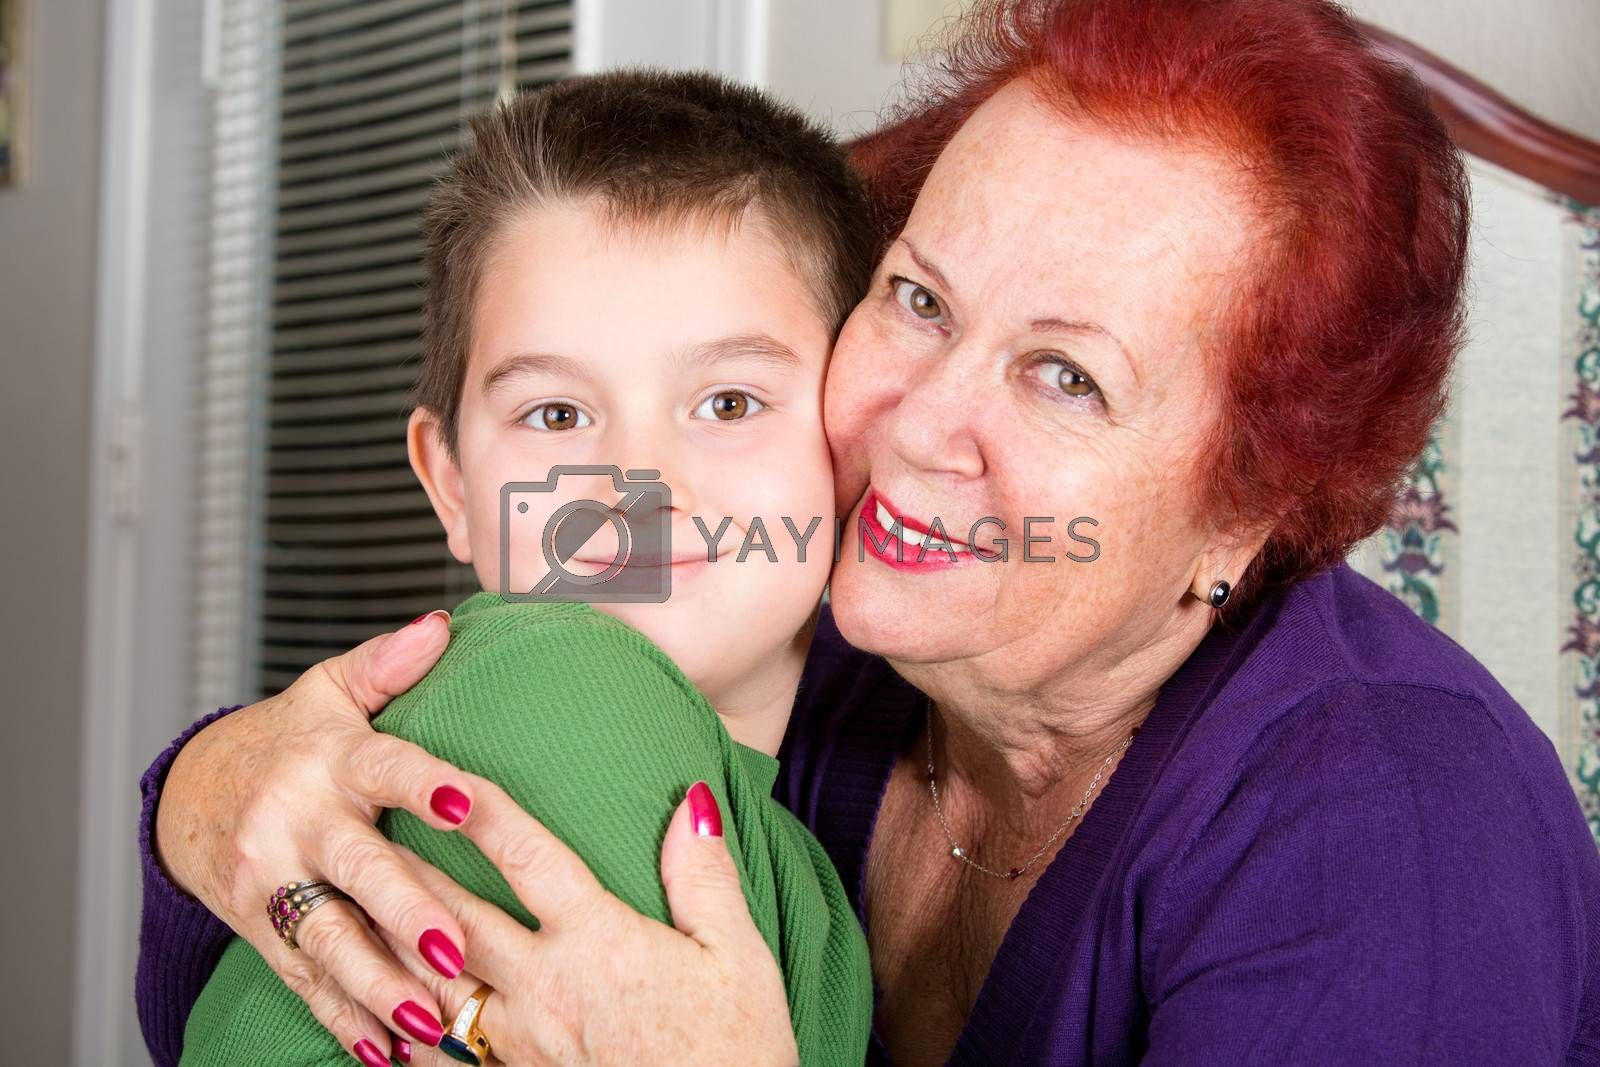 Grandmother's Love to her eight years old grandson, she hugs him tighly with a cheek to cheek touch while looking at you